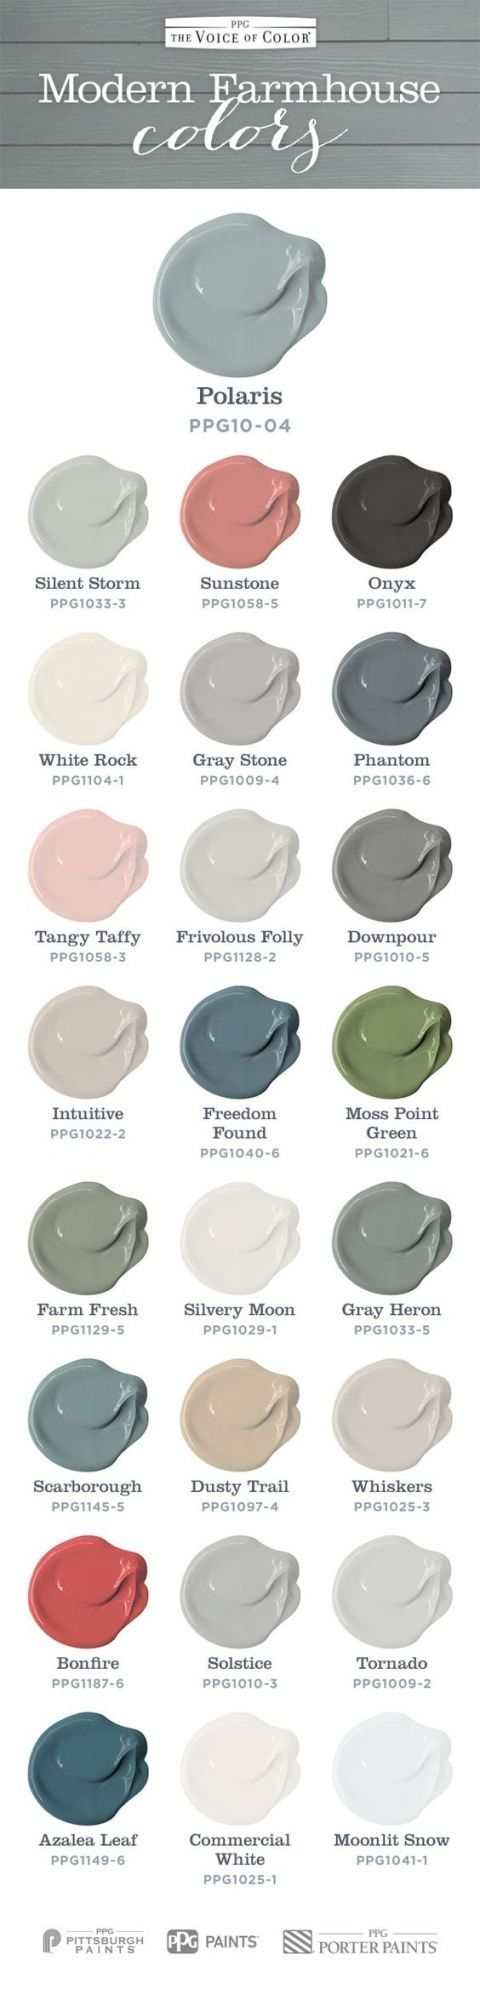 Modern farmhouse colors from voice of color house colors - Joanna gaines interior paint colors ...